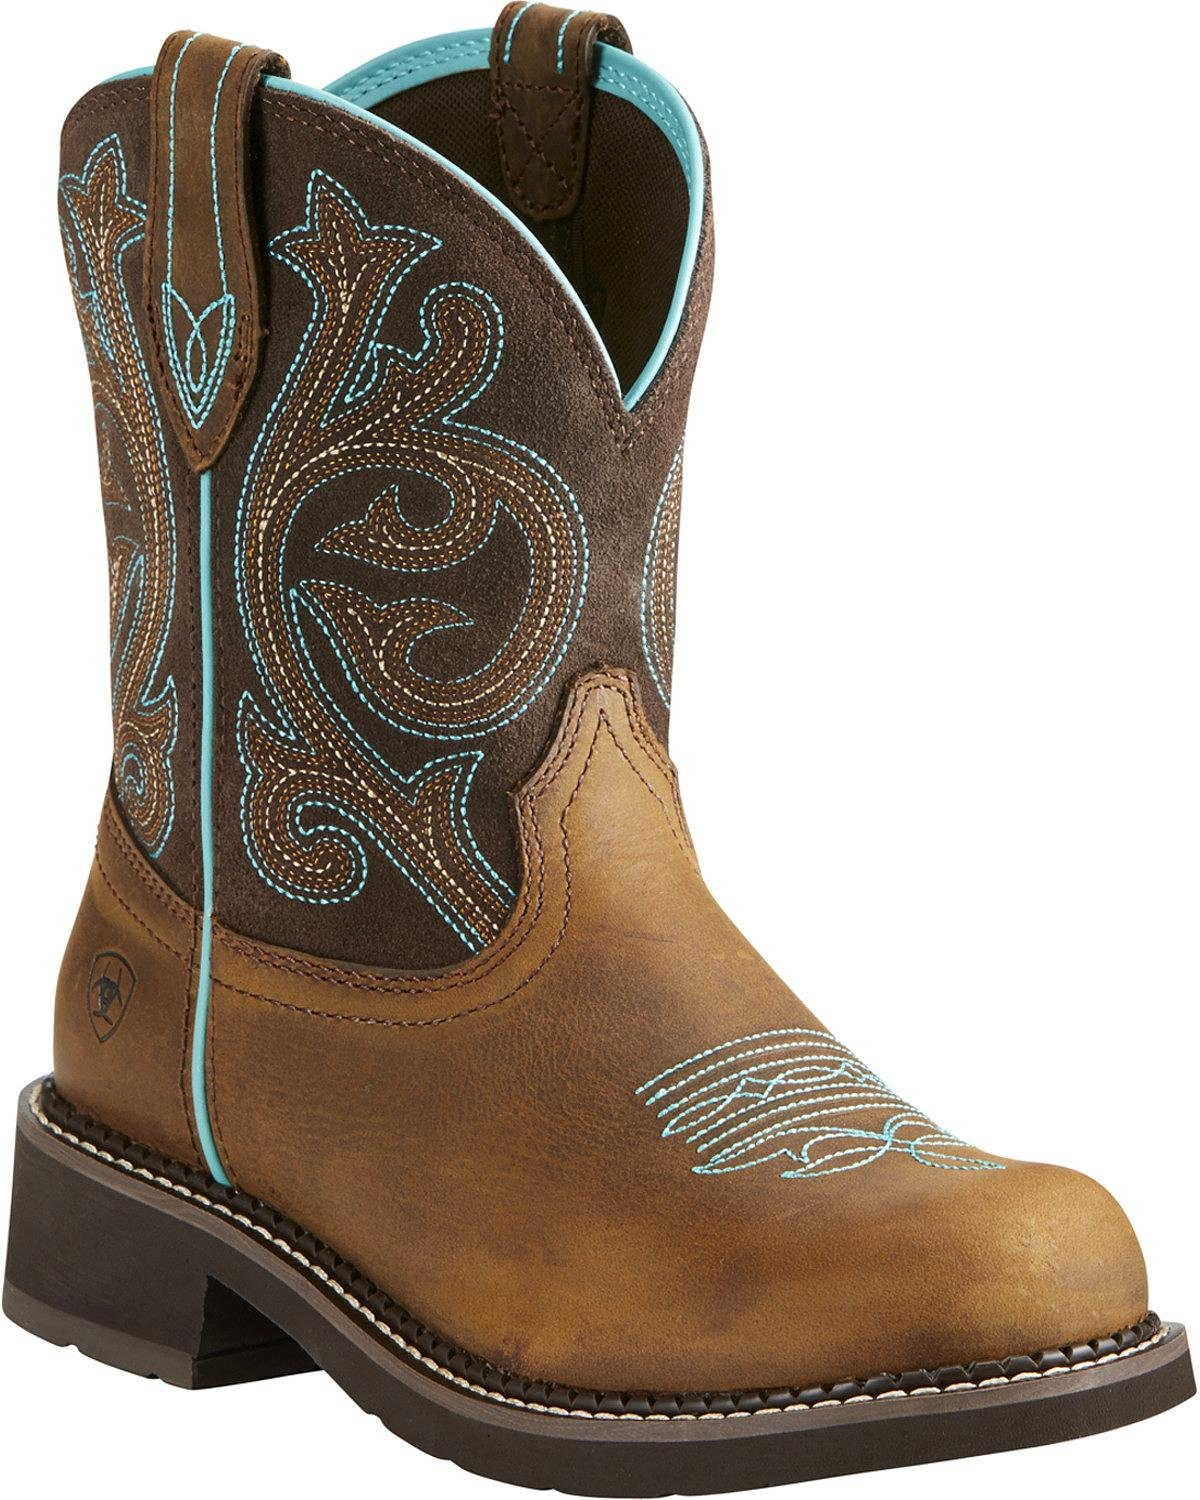 Ariat Women's Fatbaby Collection Western Cowboy Boot, Distressed Brown/Fudge, 8.5 B US